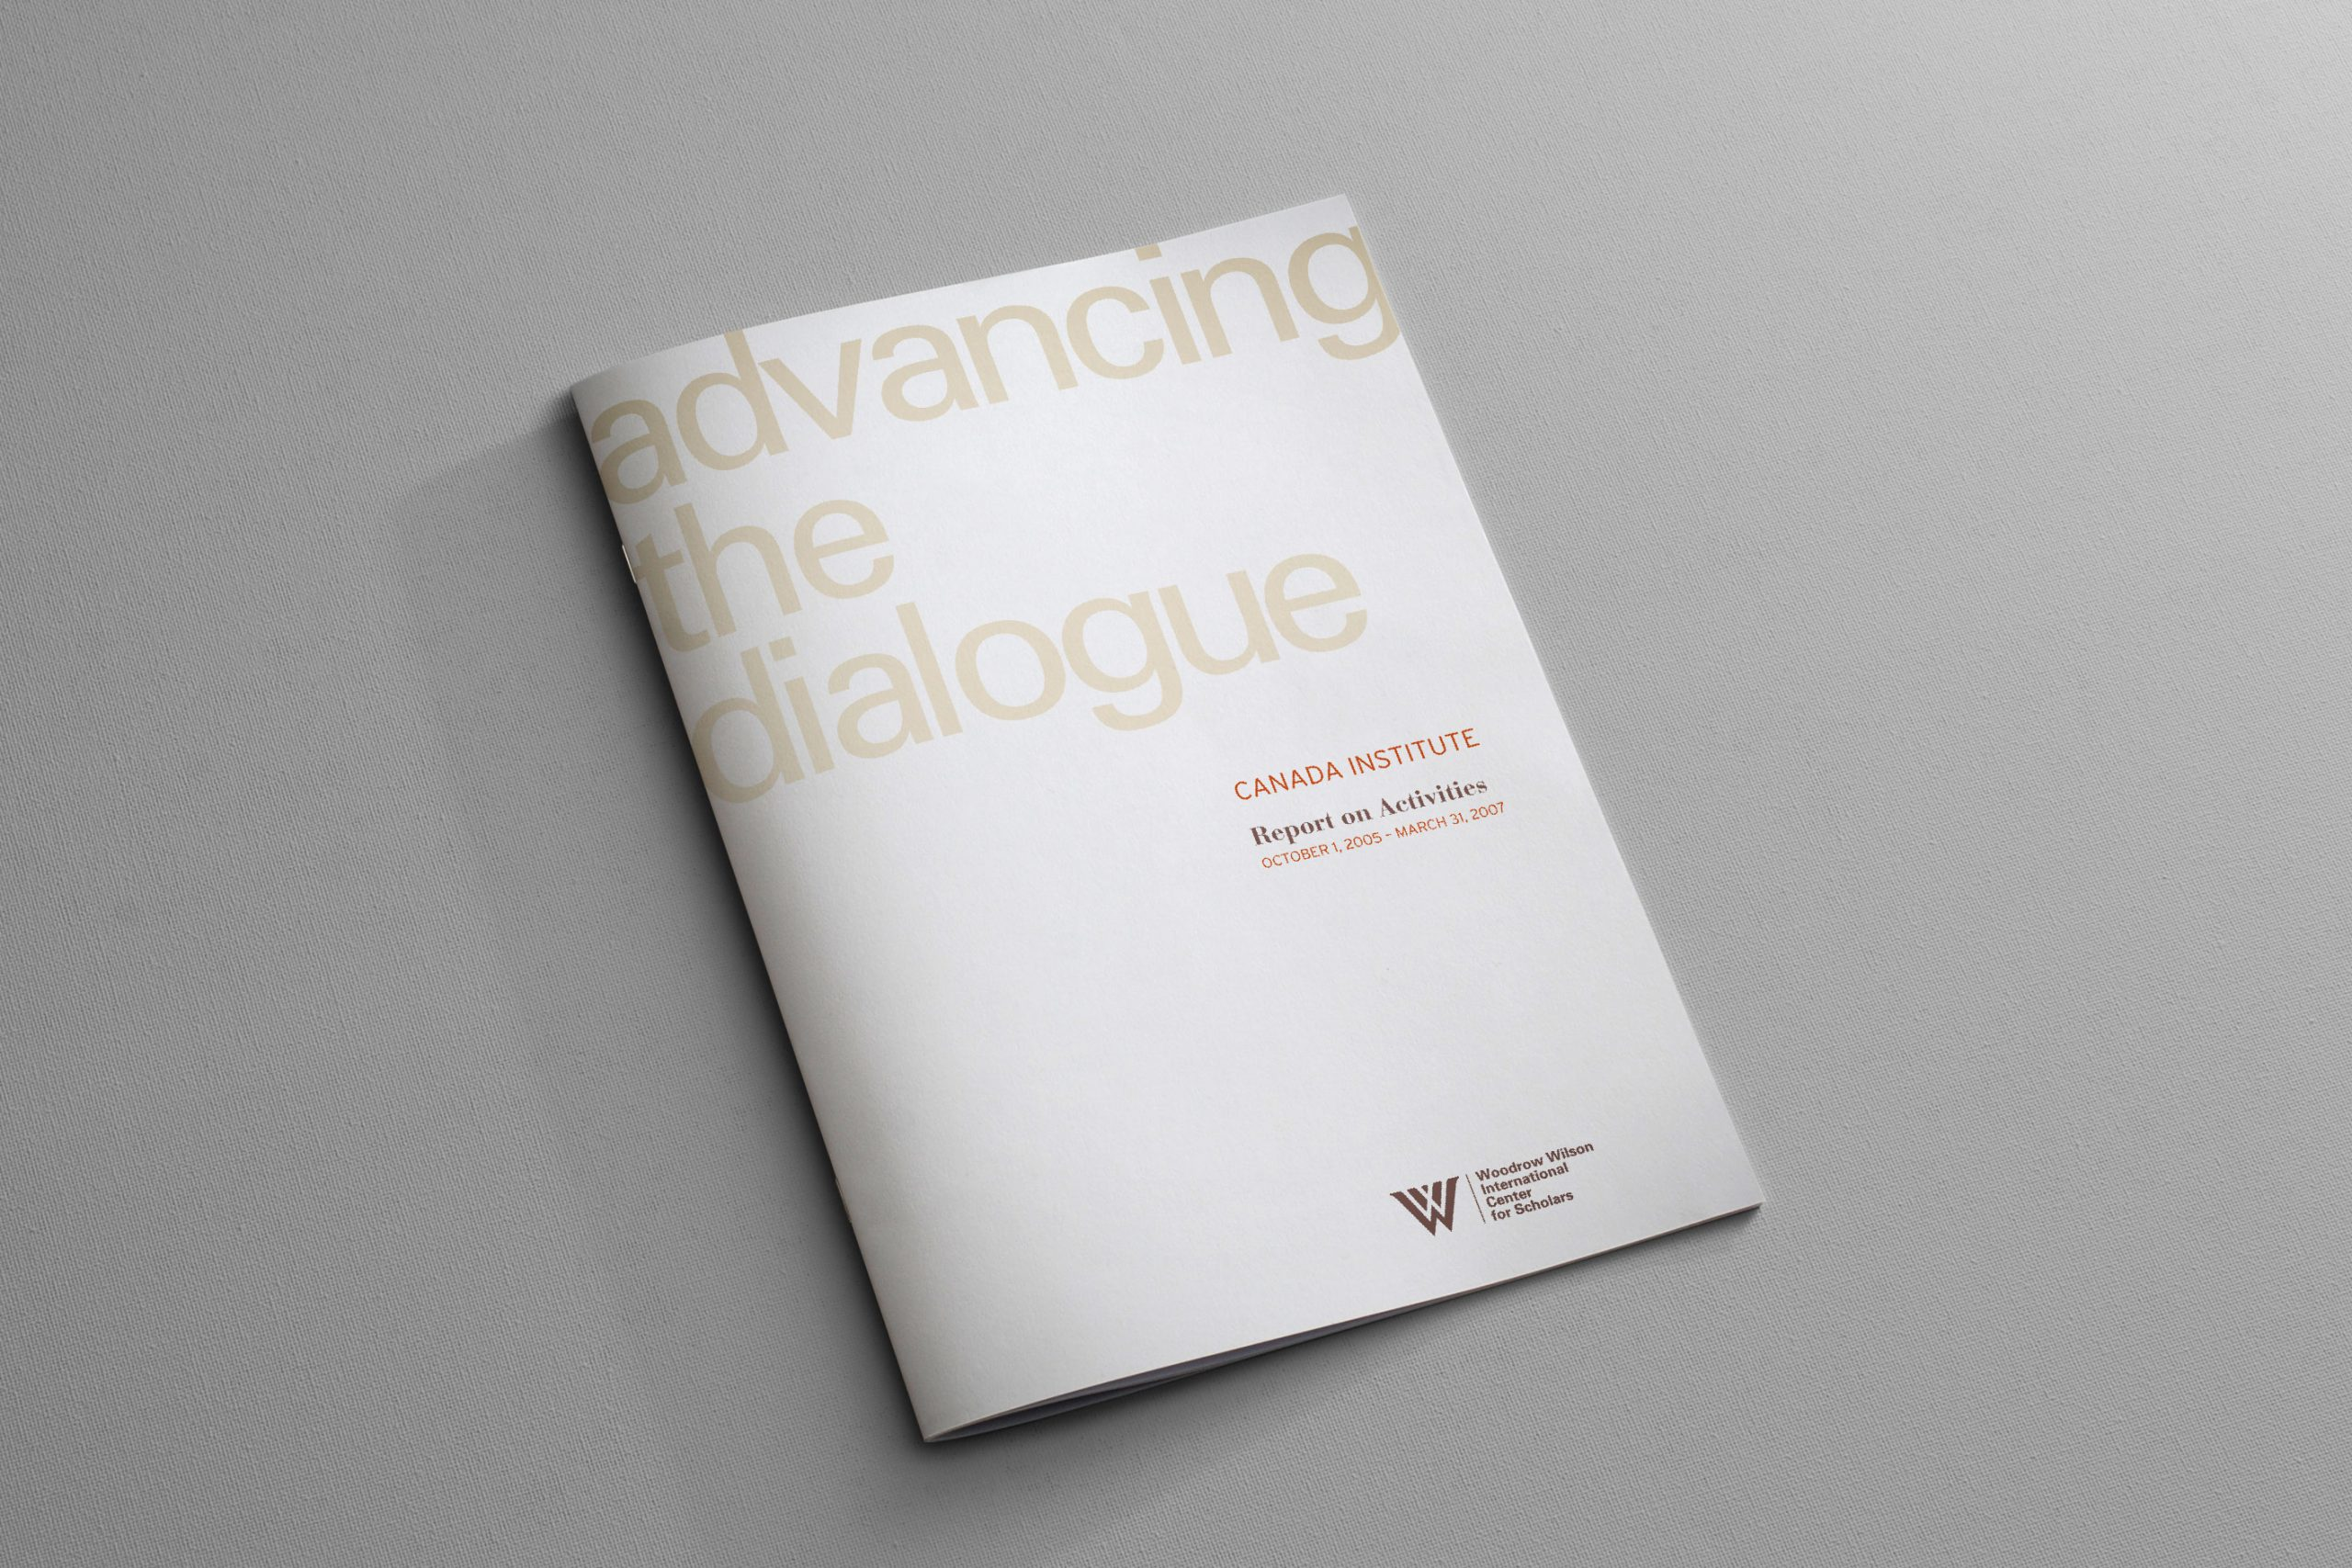 advancingthedialogue-cover